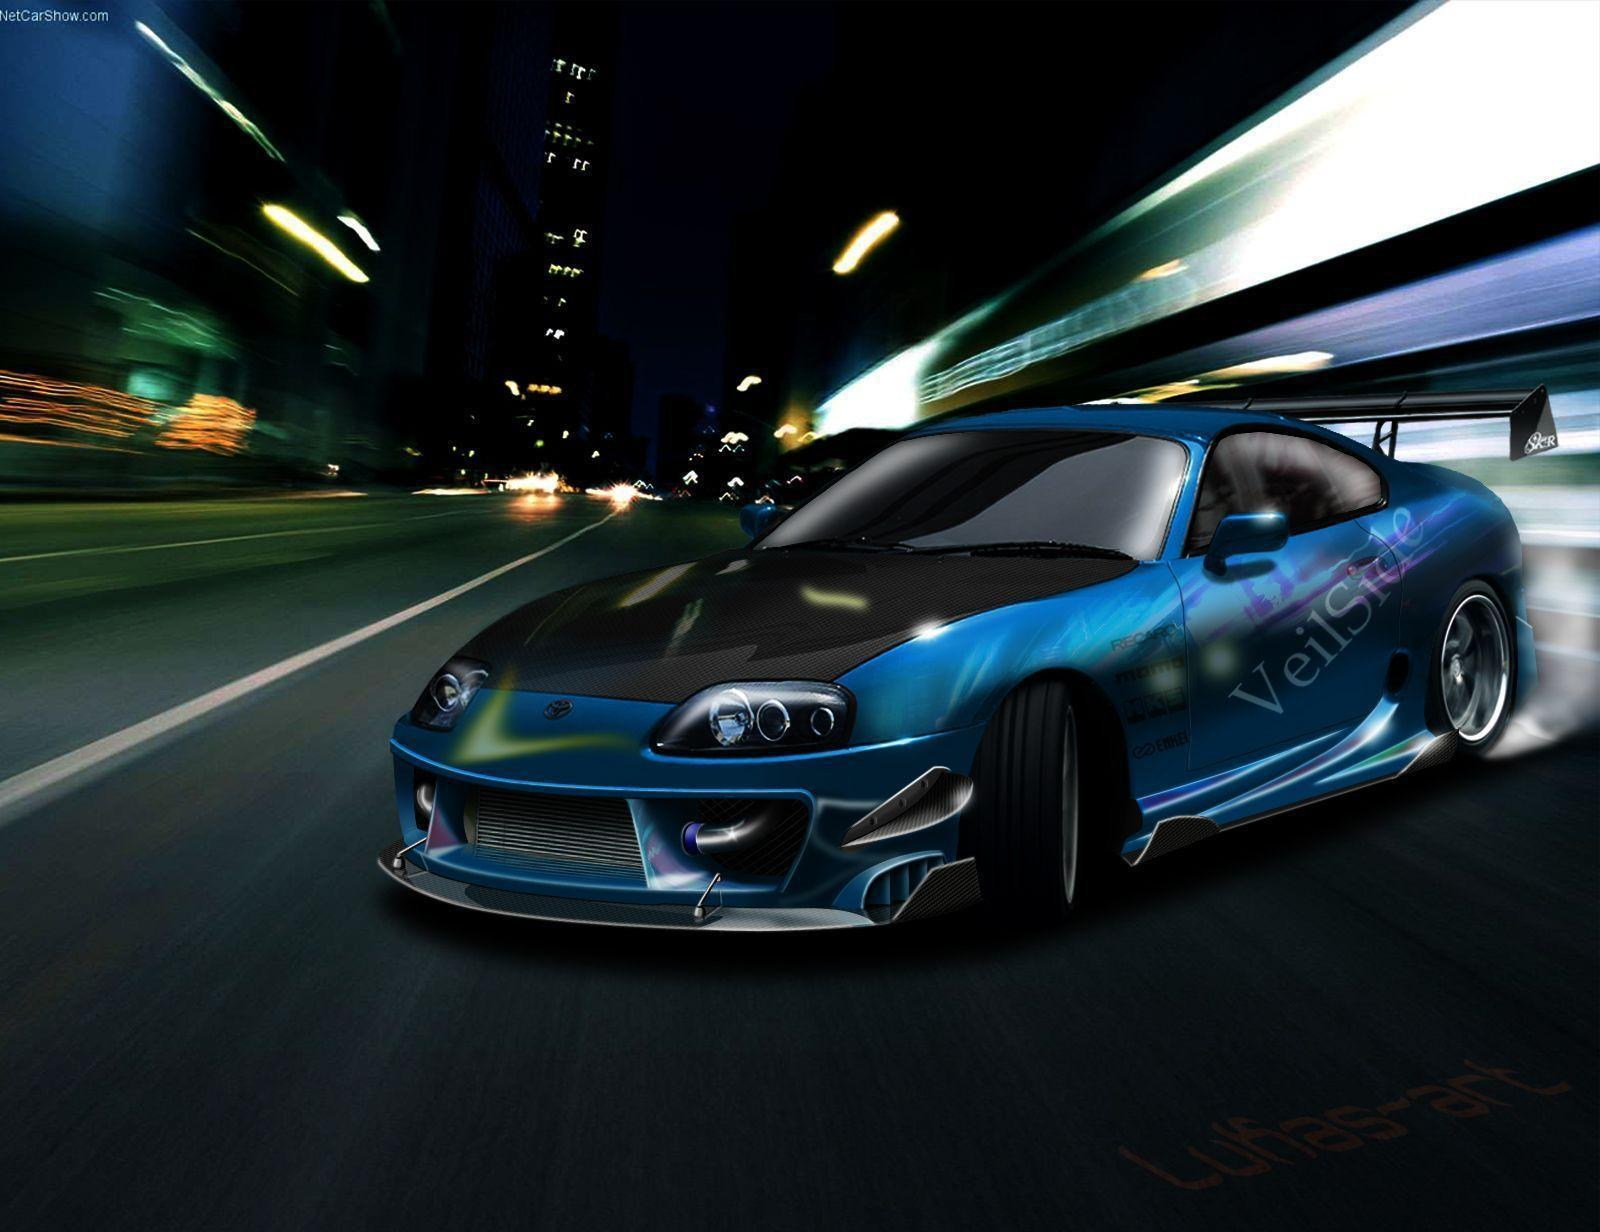 Drift Car Wallpaper : HD Wallpapers